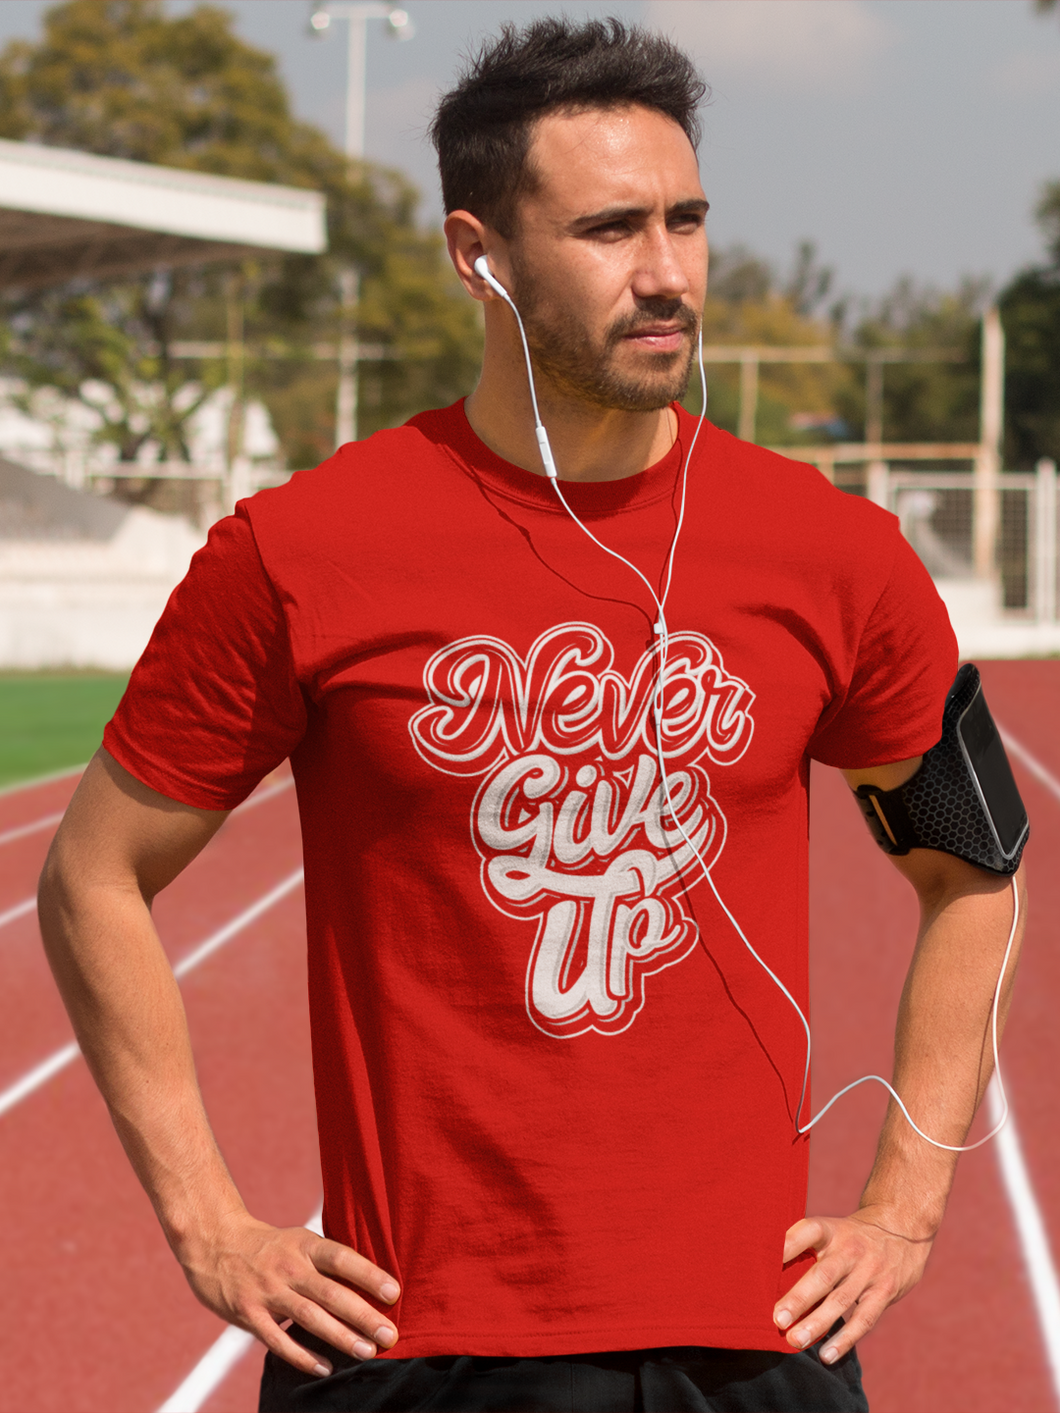 Never Give Up - Men's Half Sleeve T-Shirt - Red